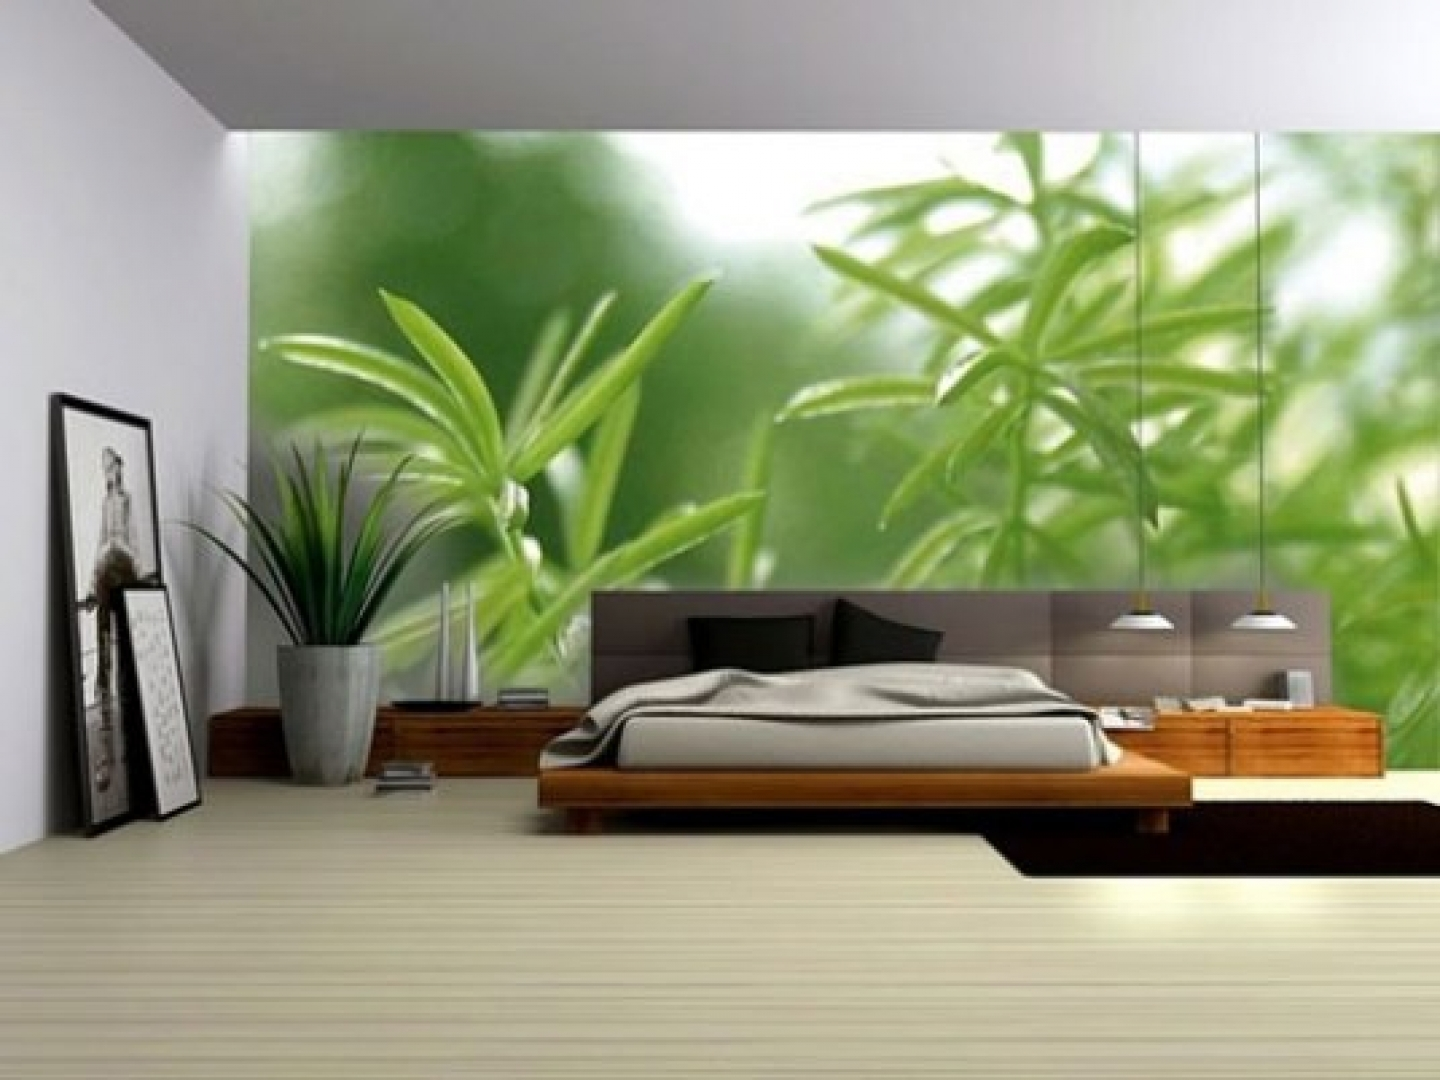 Wallpapers Design For Home loopelecom 1440x1080